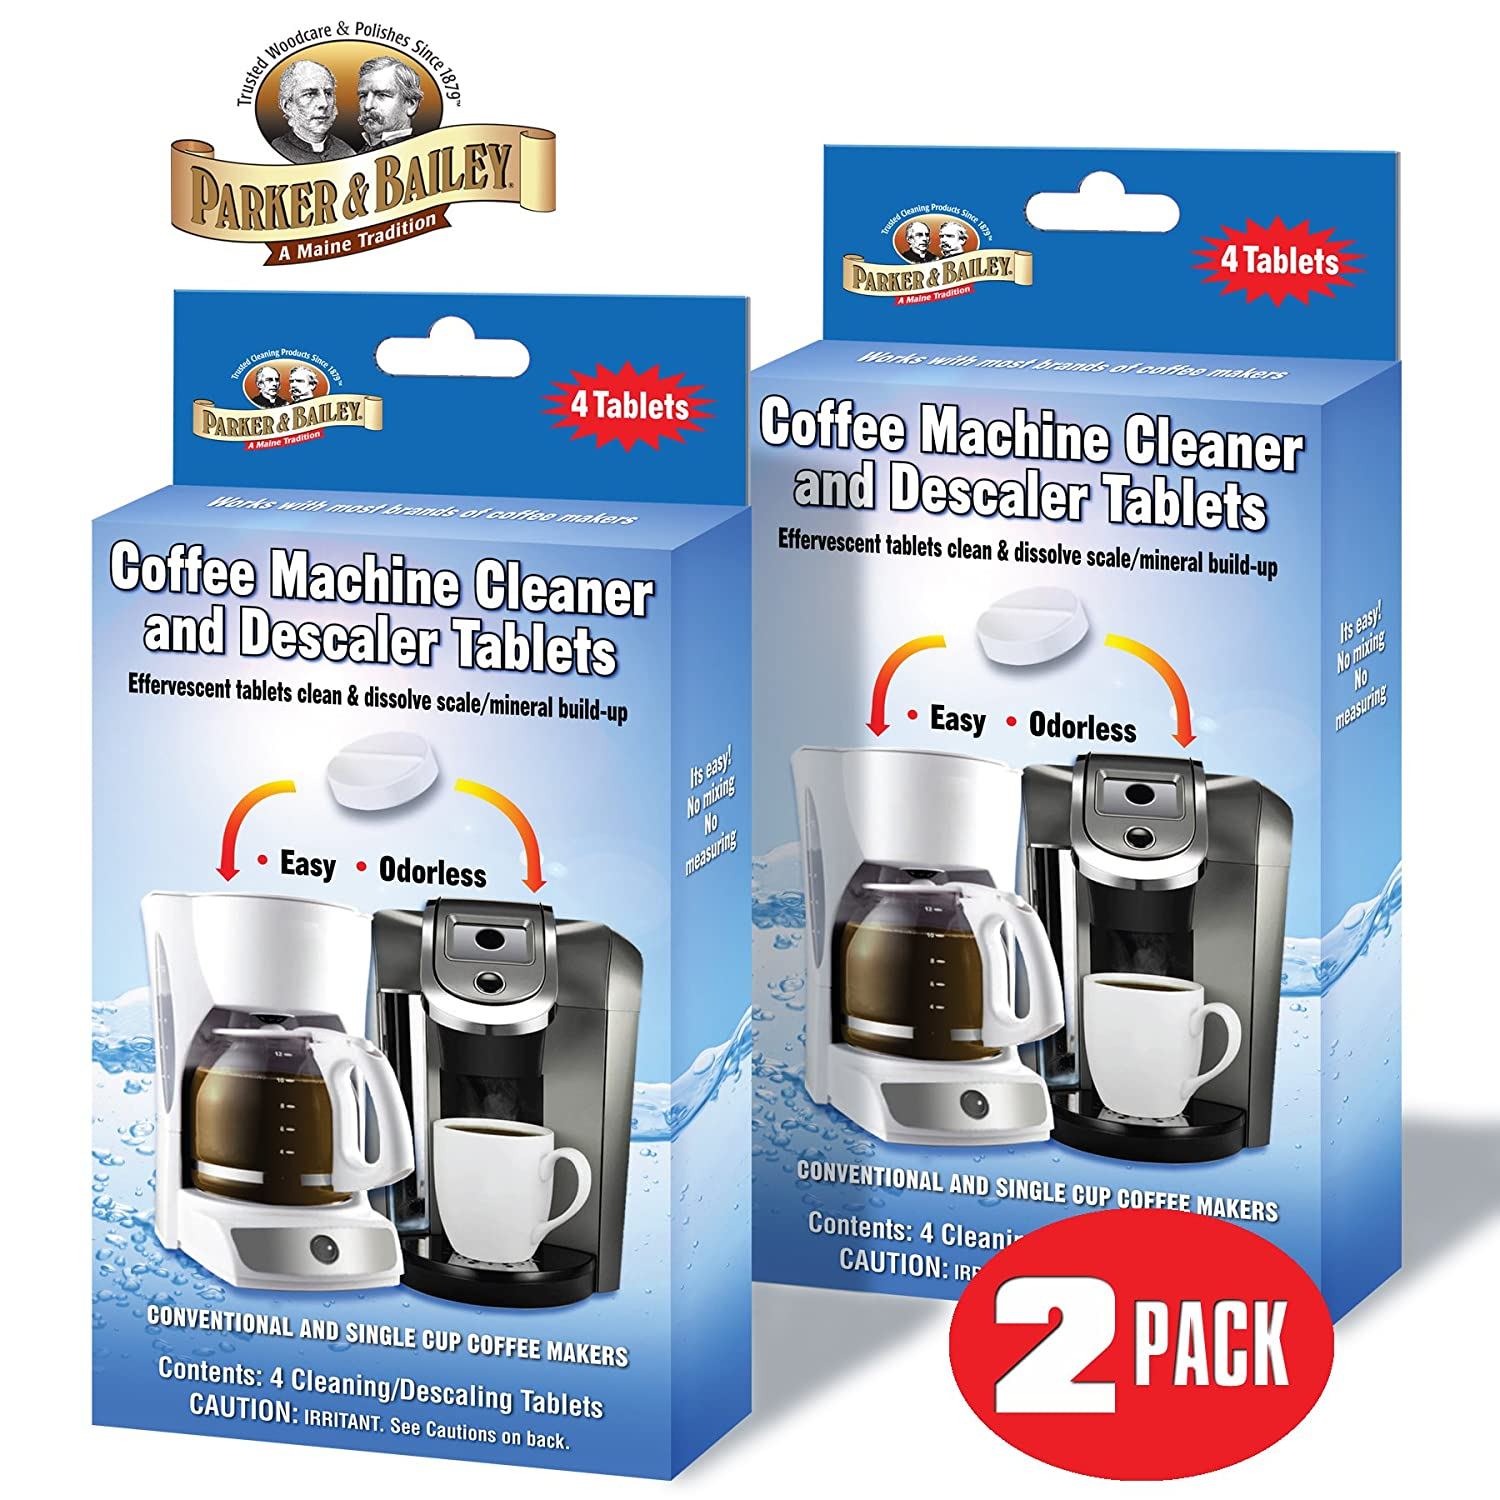 Parker Bailey Coffee Machine Cleaner Descaler Tablets